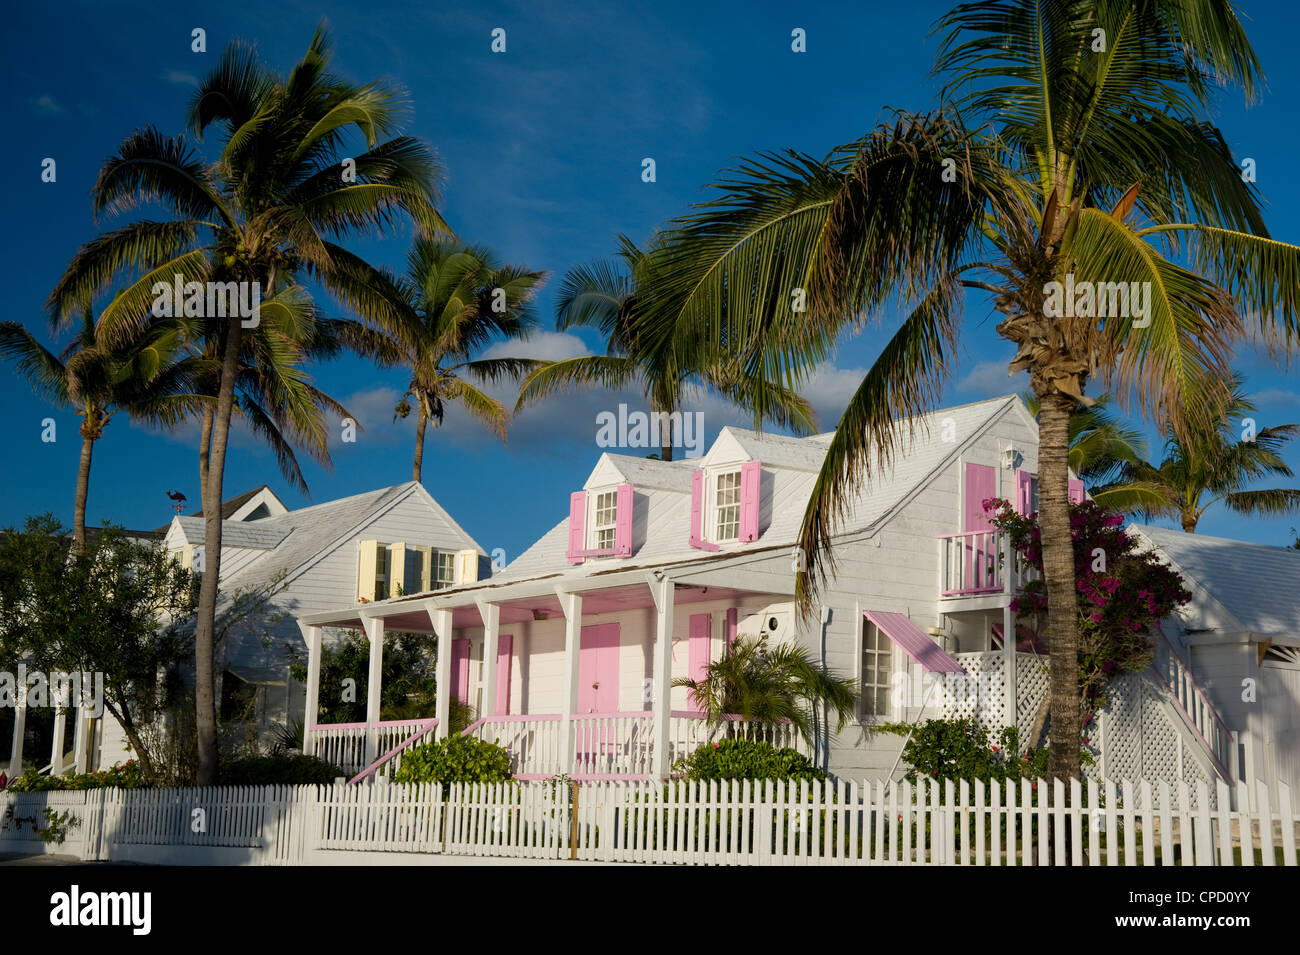 Pastel painted colonial houses in Dunmore Town, Harbour Island, Eleuthera, The Bahamas, West Indies, Caribbean, - Stock Image